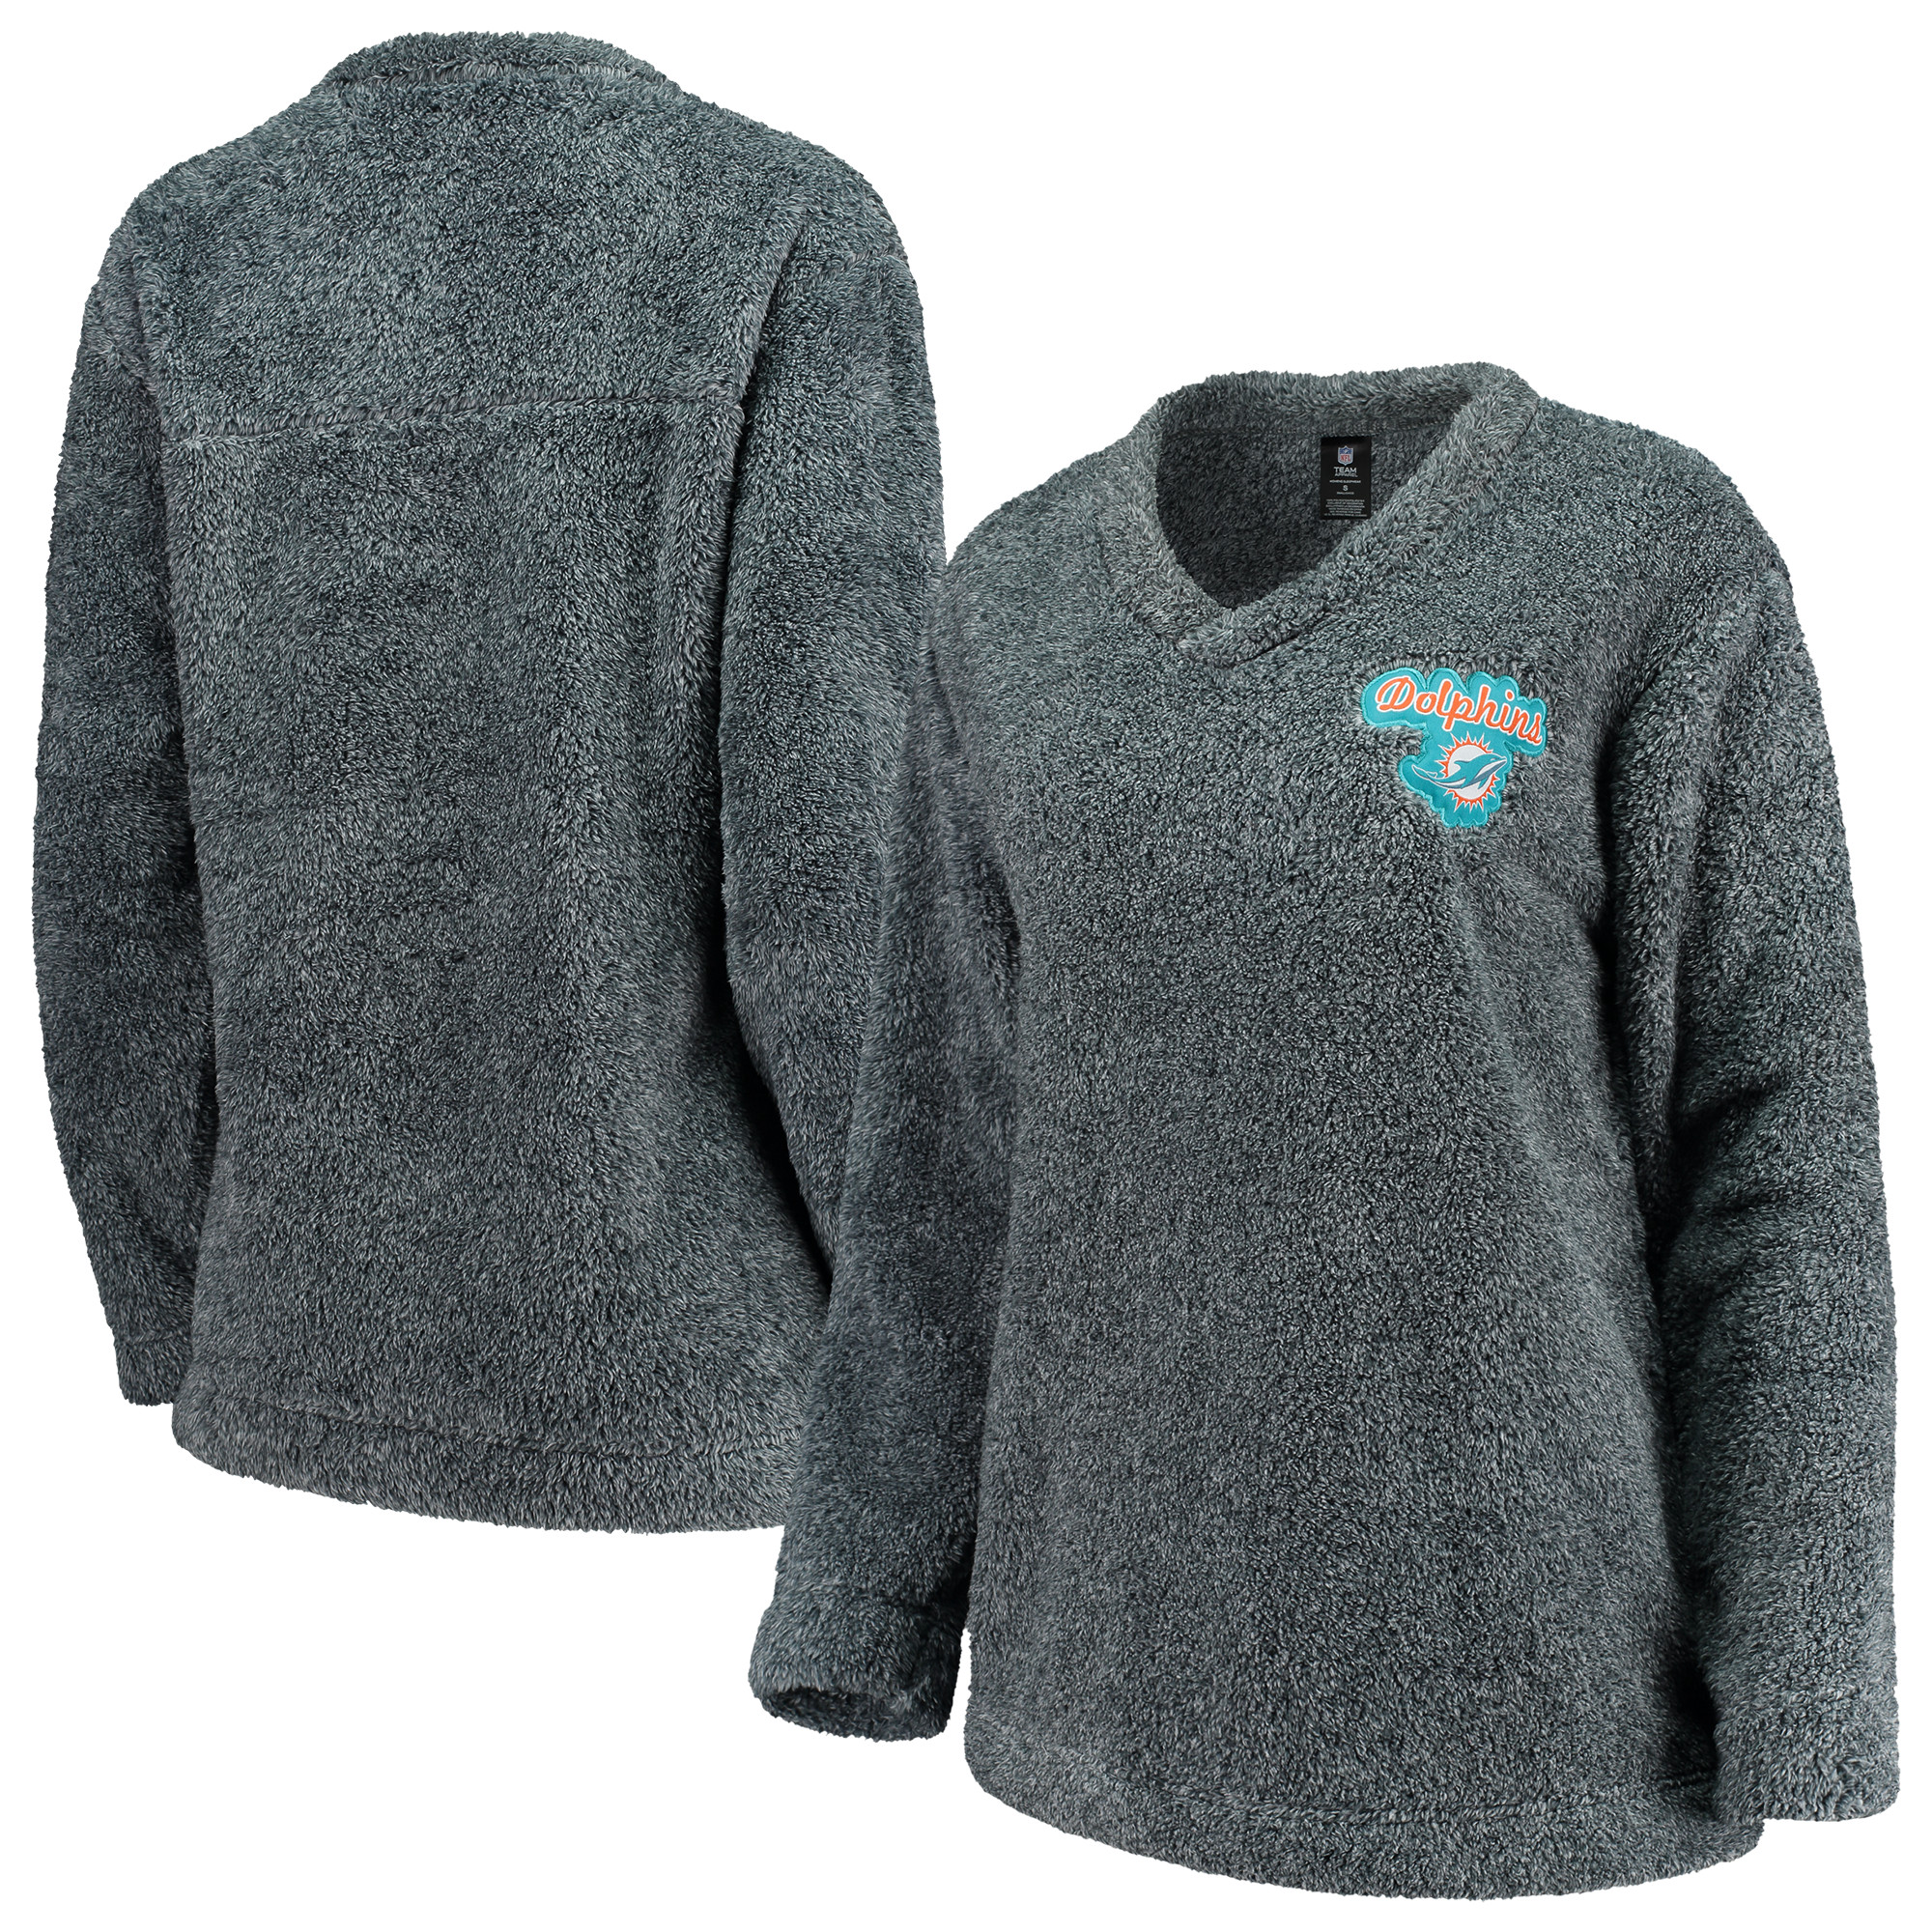 Miami Dolphins Concepts Sport Women's Trifecta Pullover Sweatshirt - Charcoal